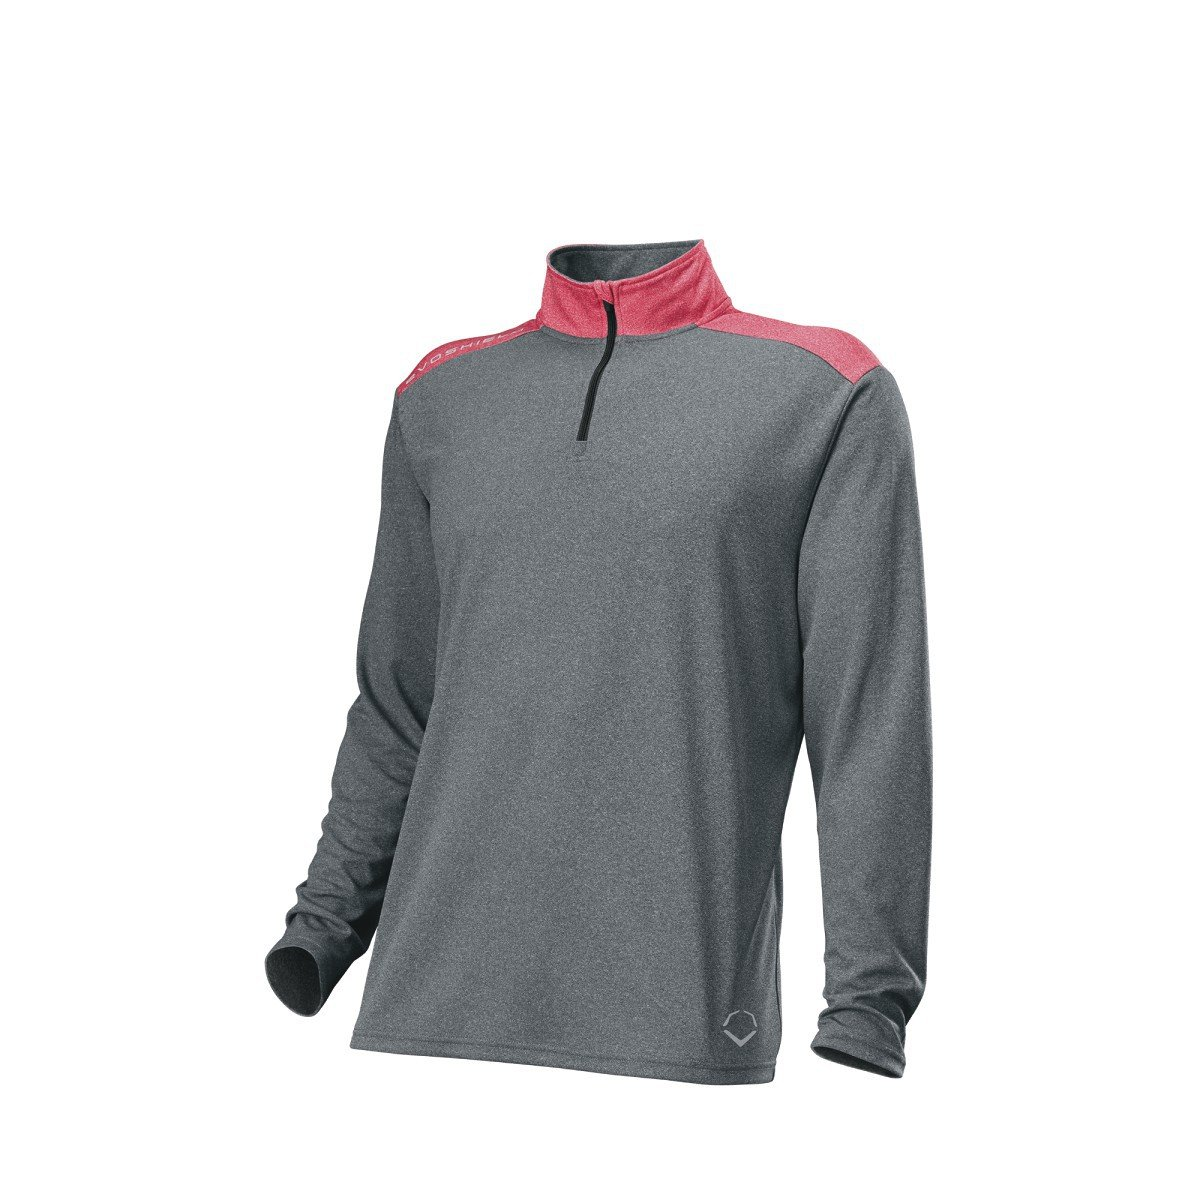 Evoshield Boys Pro Team 1 / 4 Zip – ユース B0741KZYYM Youth Small Charcoal/Scarlet Charcoal/Scarlet Youth Small